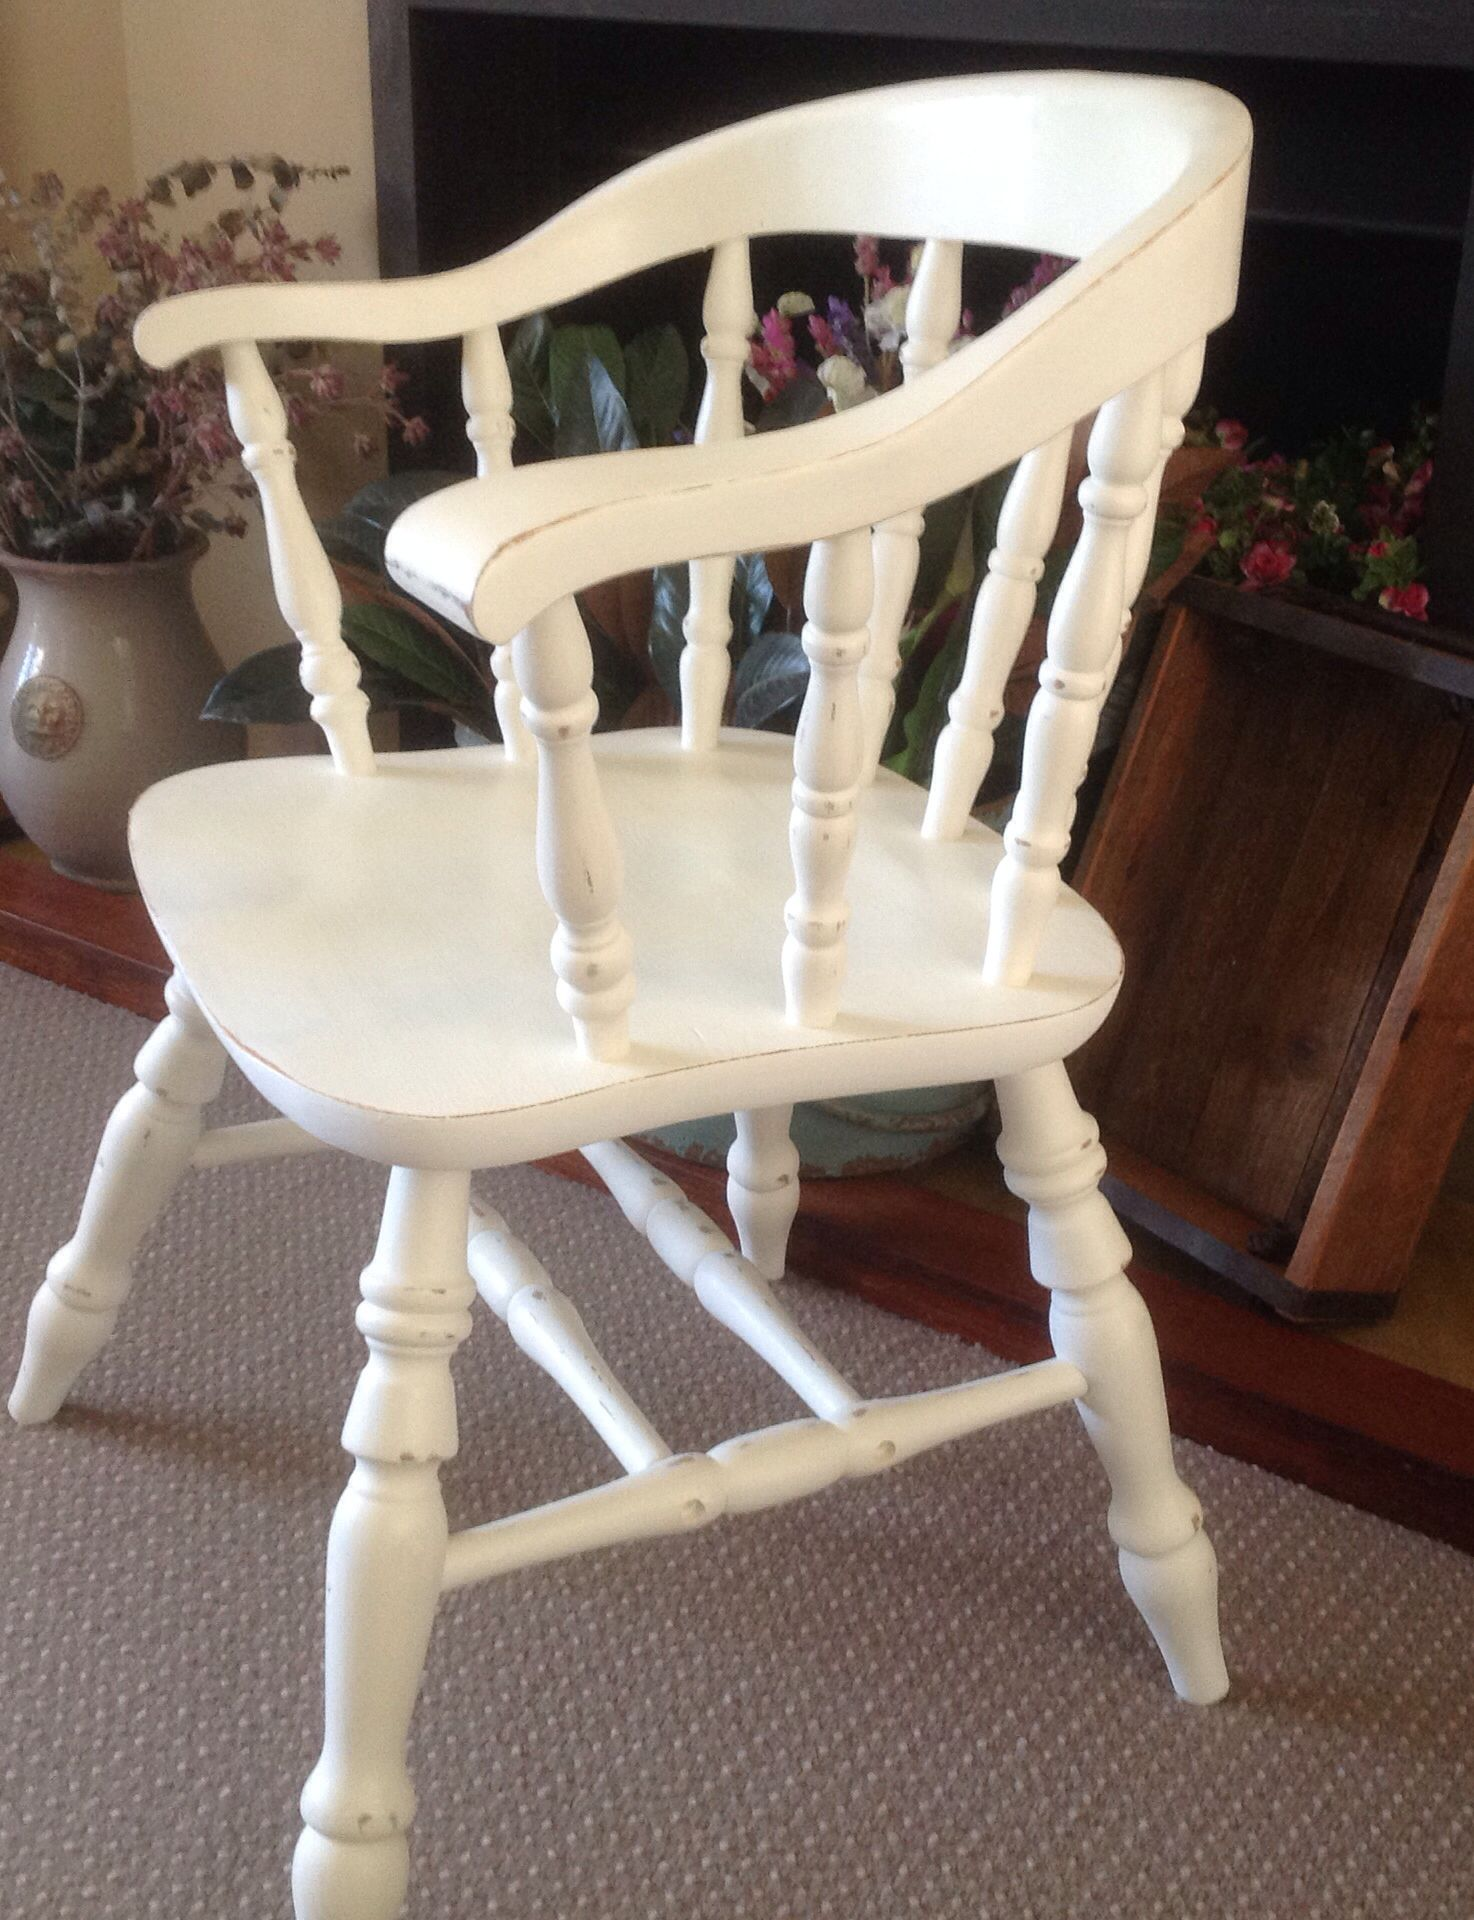 Old White restored comfy country cottage chairs by Suellen at Marion's Vintage Country Wares